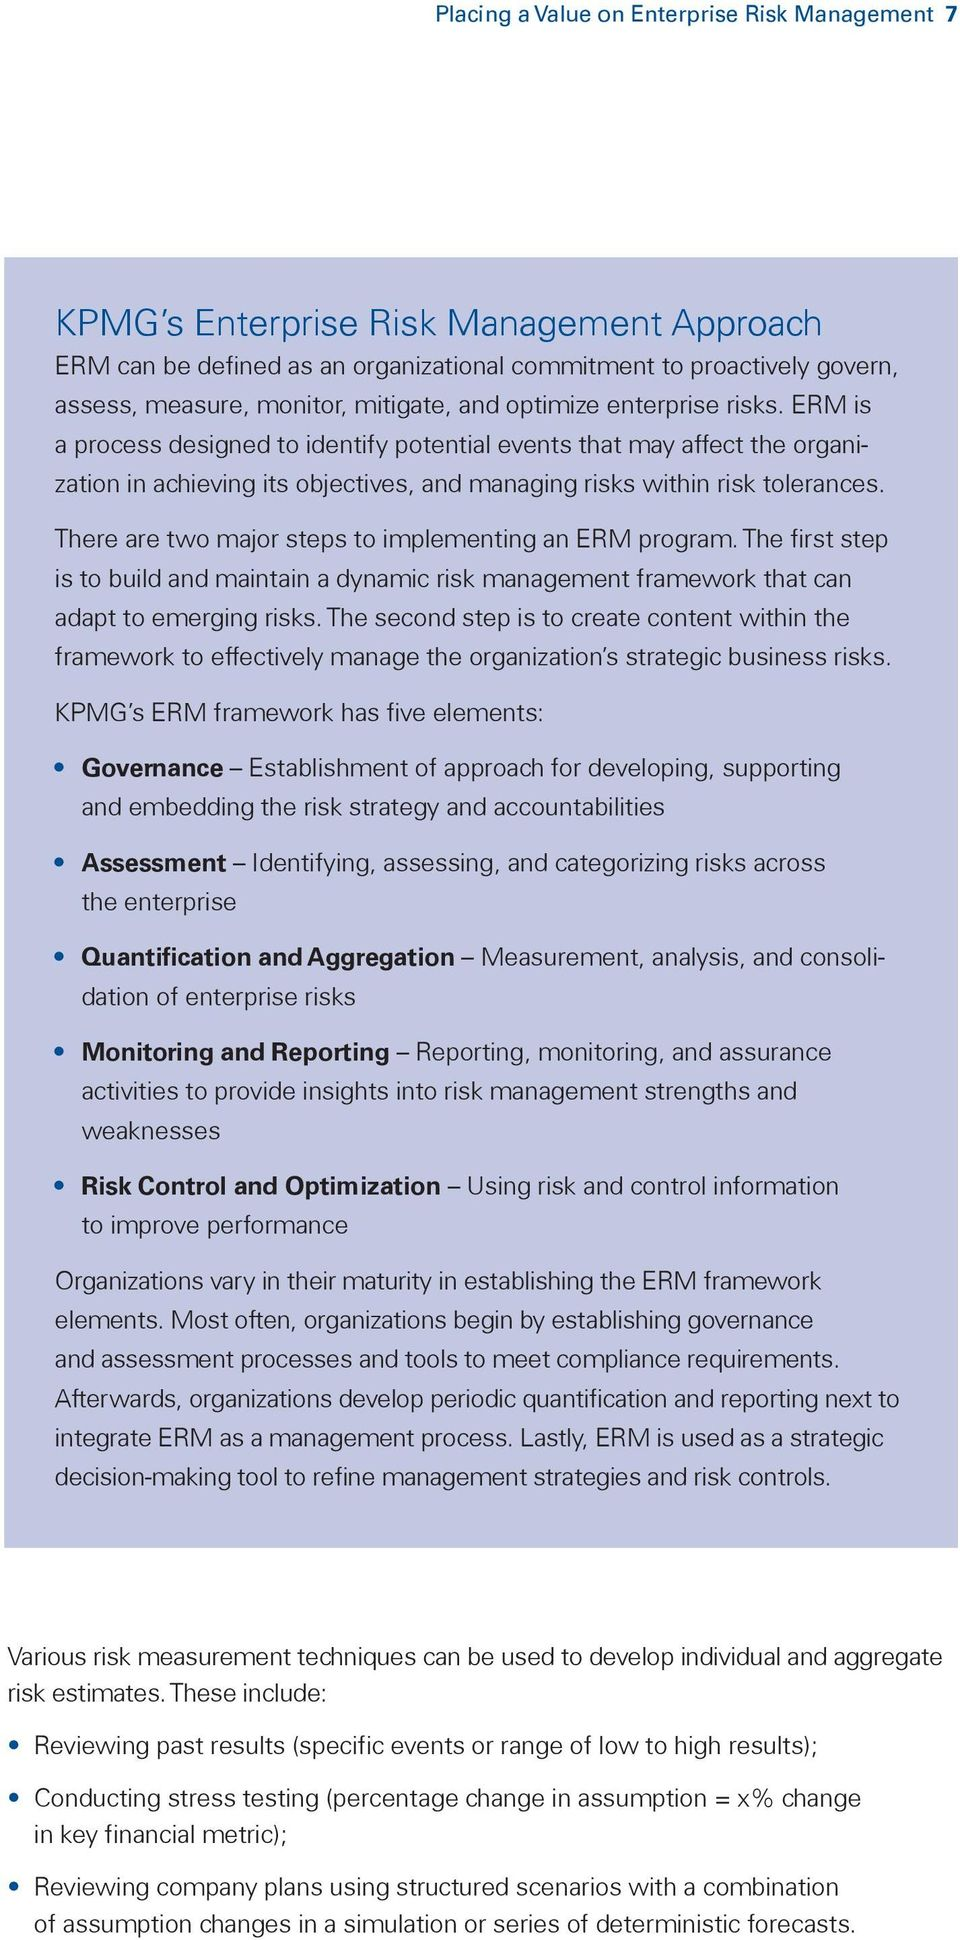 There are two major steps to implementing an ERM program. The first step is to build and maintain a dynamic risk management framework that can adapt to emerging risks.